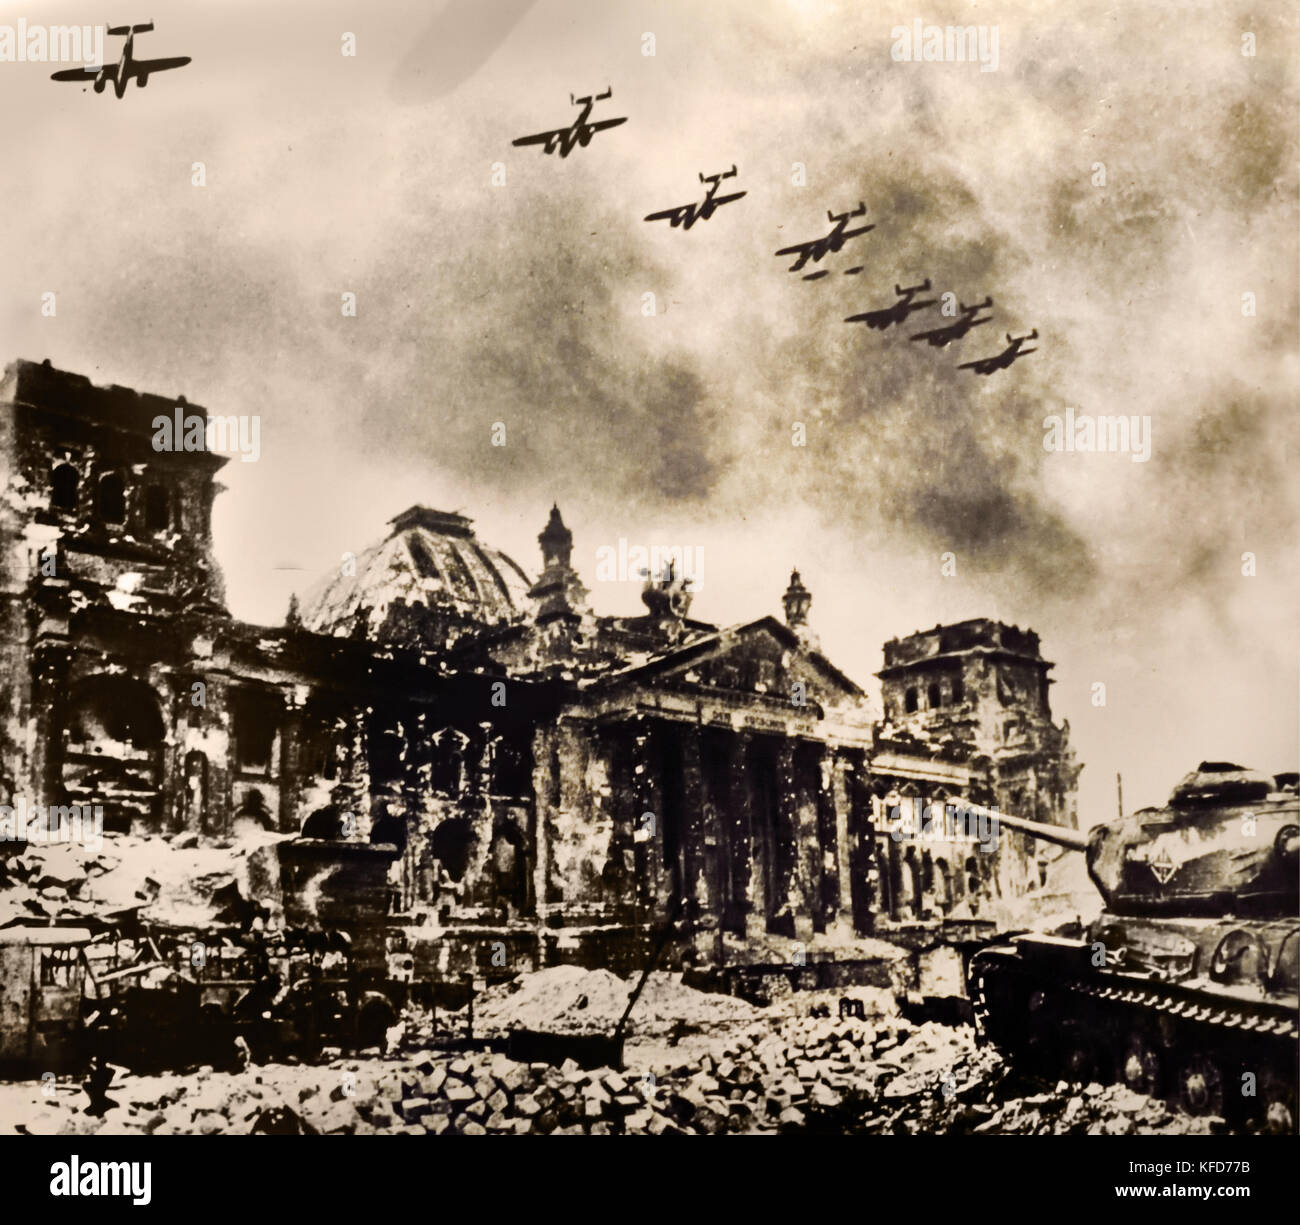 Reichstag building captured by the Red Army and severely damage in the Second World War. Berlin, Germany. April - Stock Image